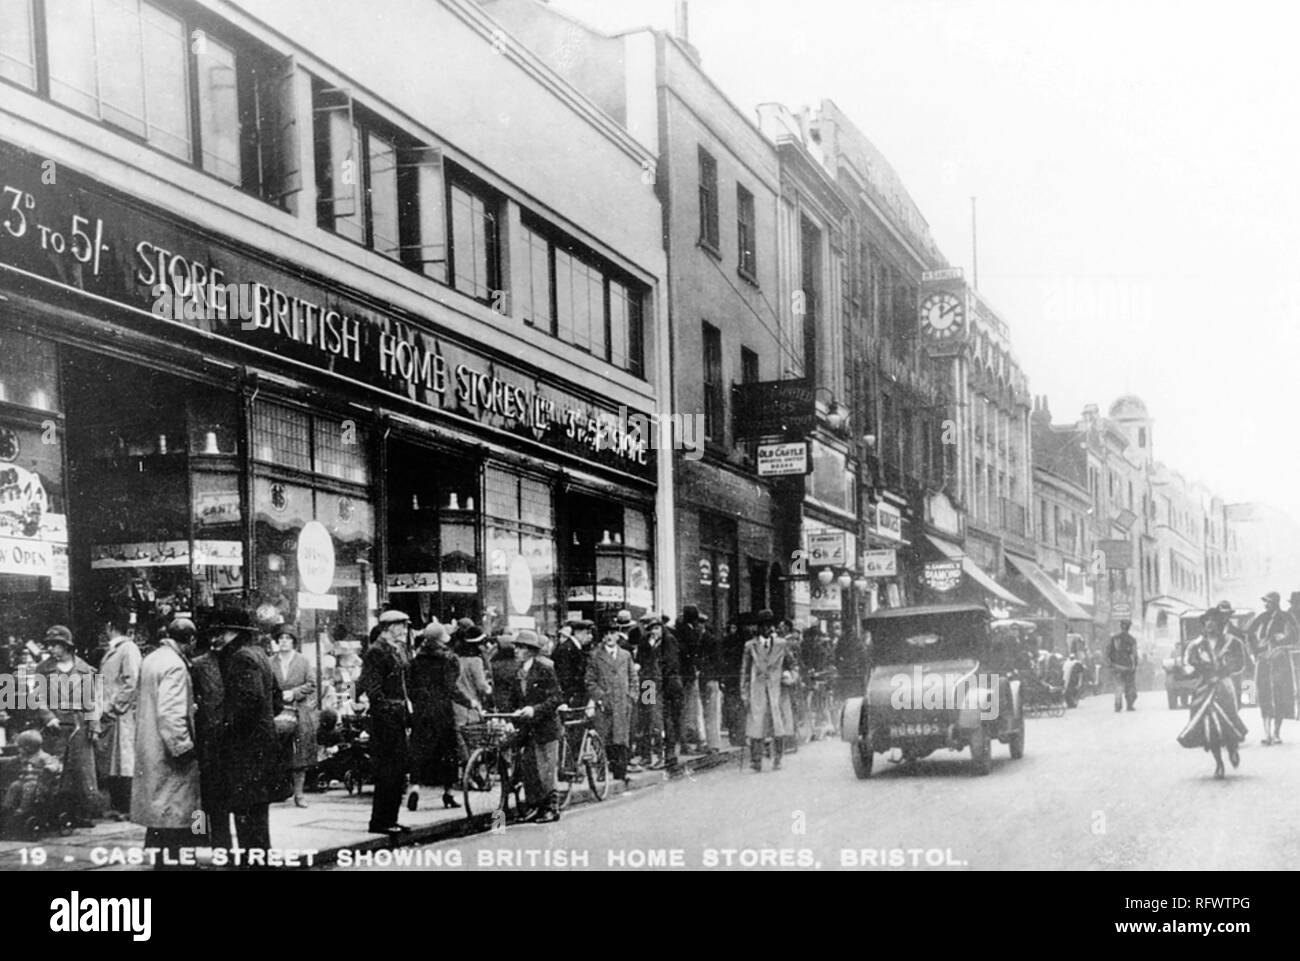 CASTLE STREET, BRISTOL, about 1925 with a British Home Stores department store at left - Stock Image